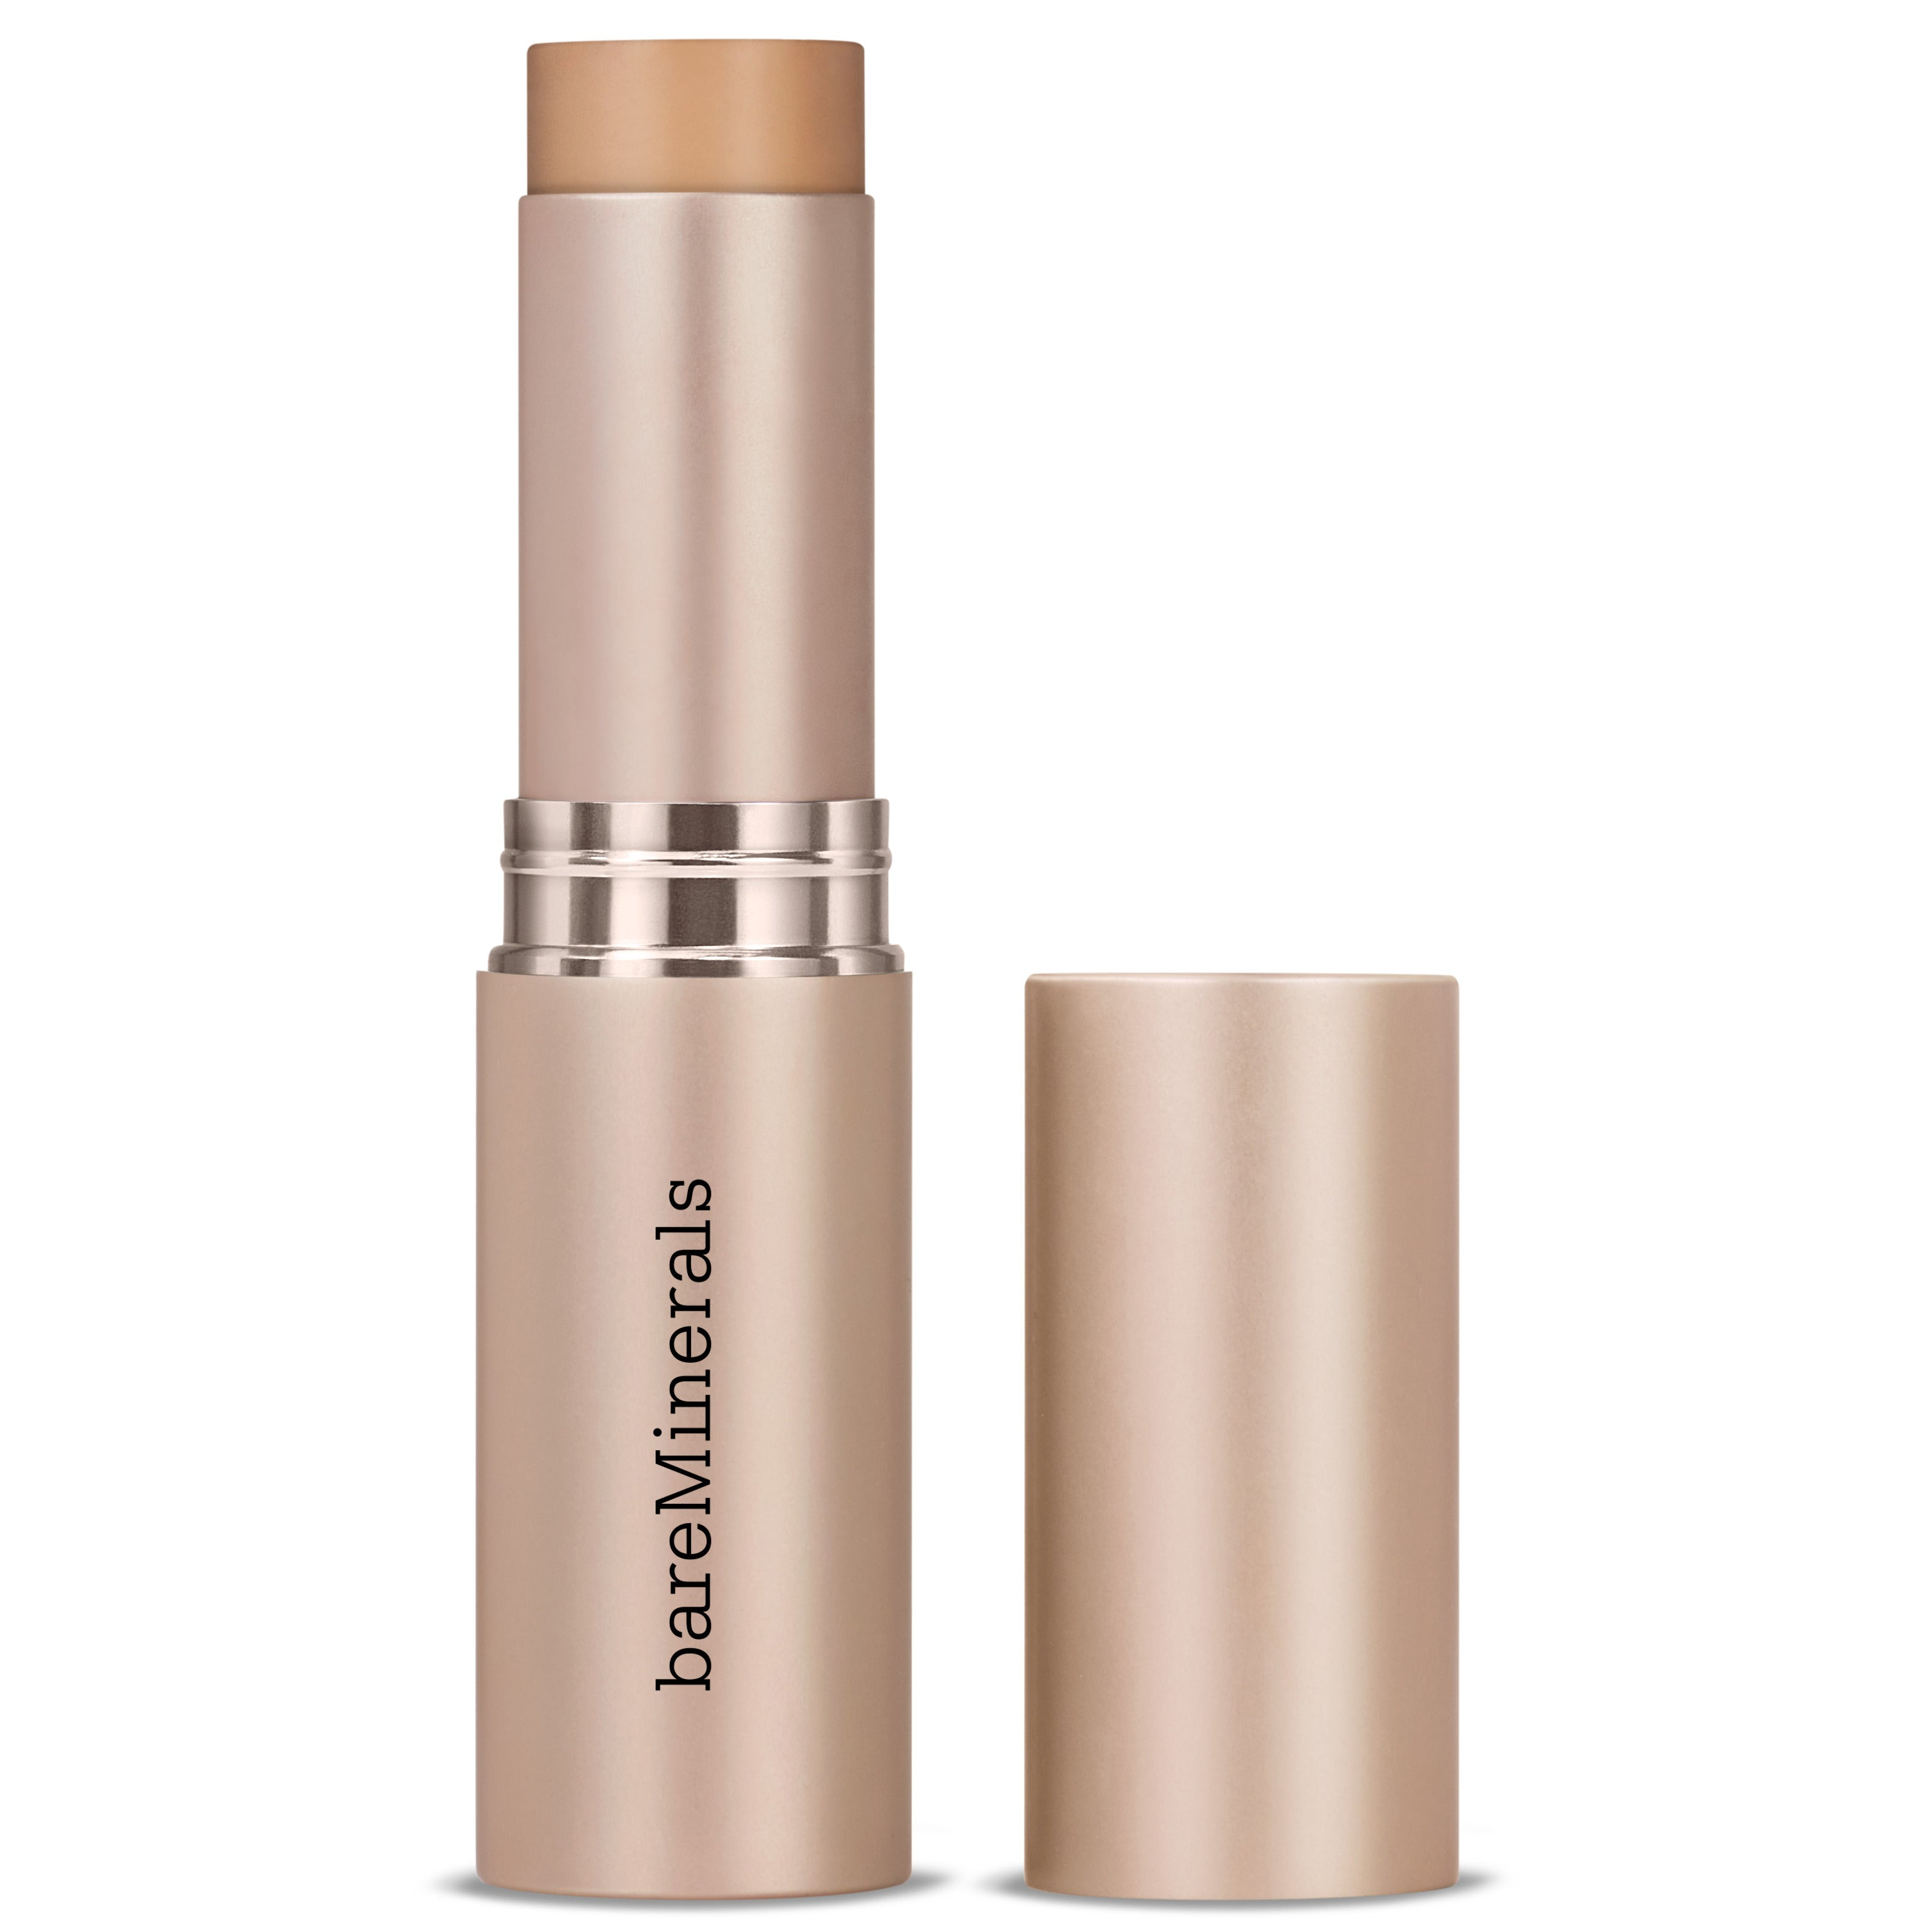 Complexion Rescue Hydrating Foundation Stick SPF 25 Desert 6.5